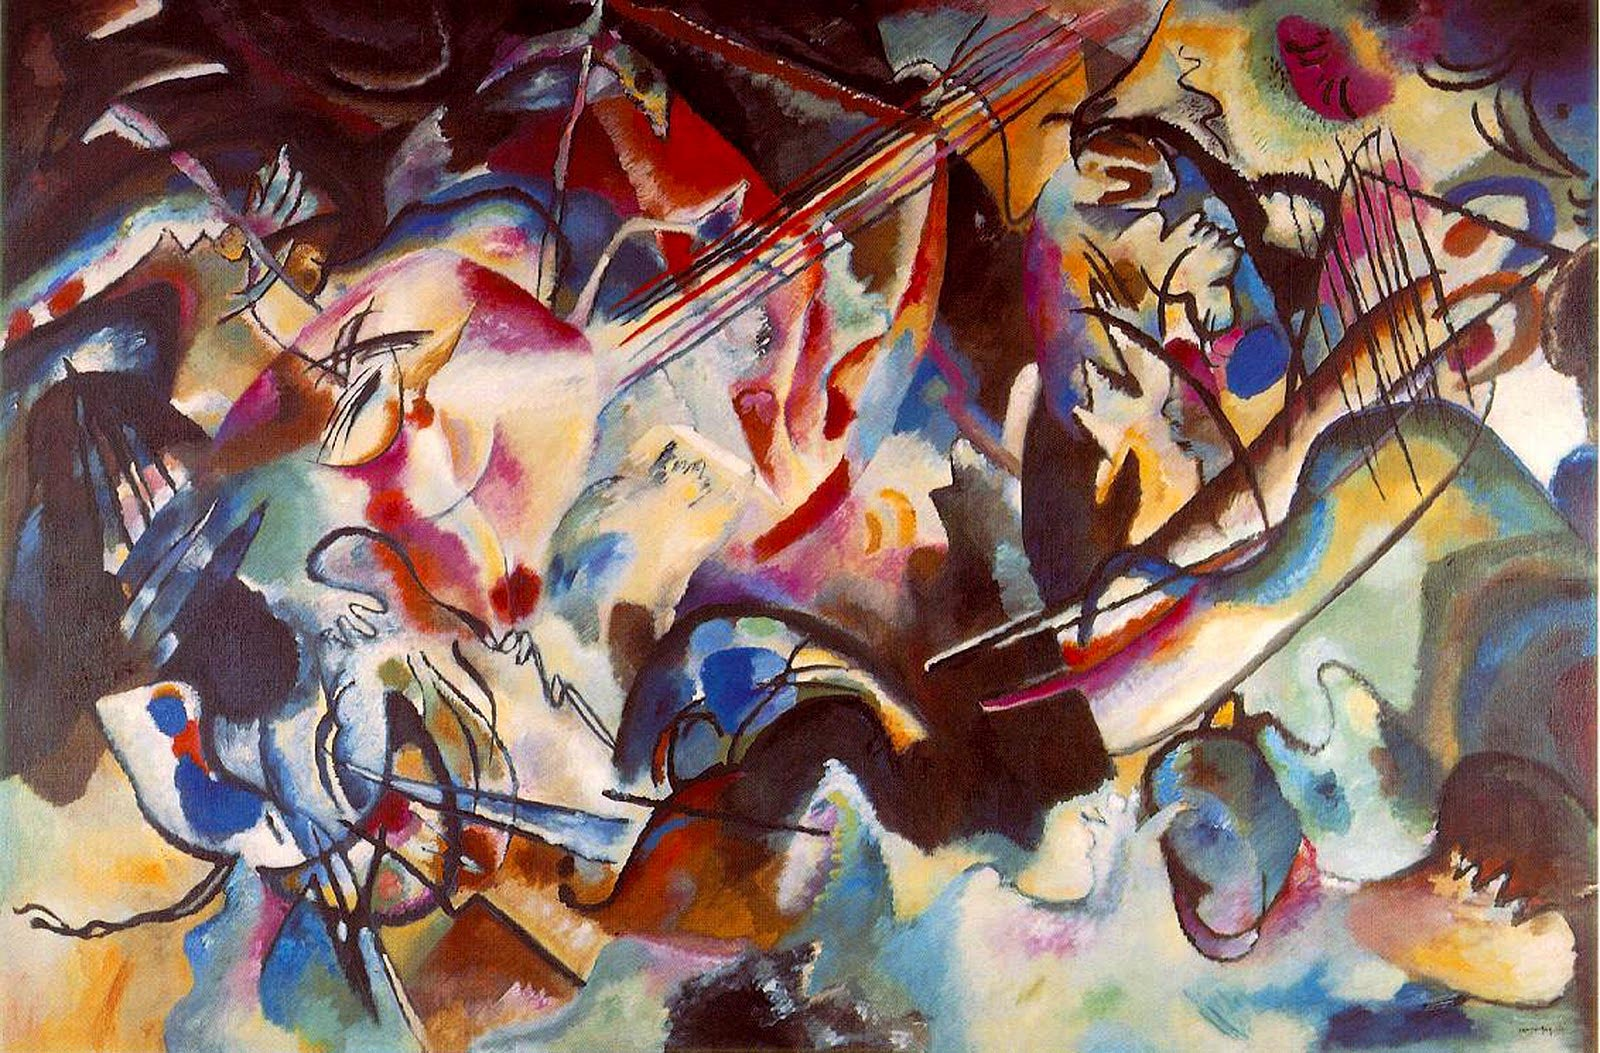 Composition VI (1913)  by Wassily Kandinsky